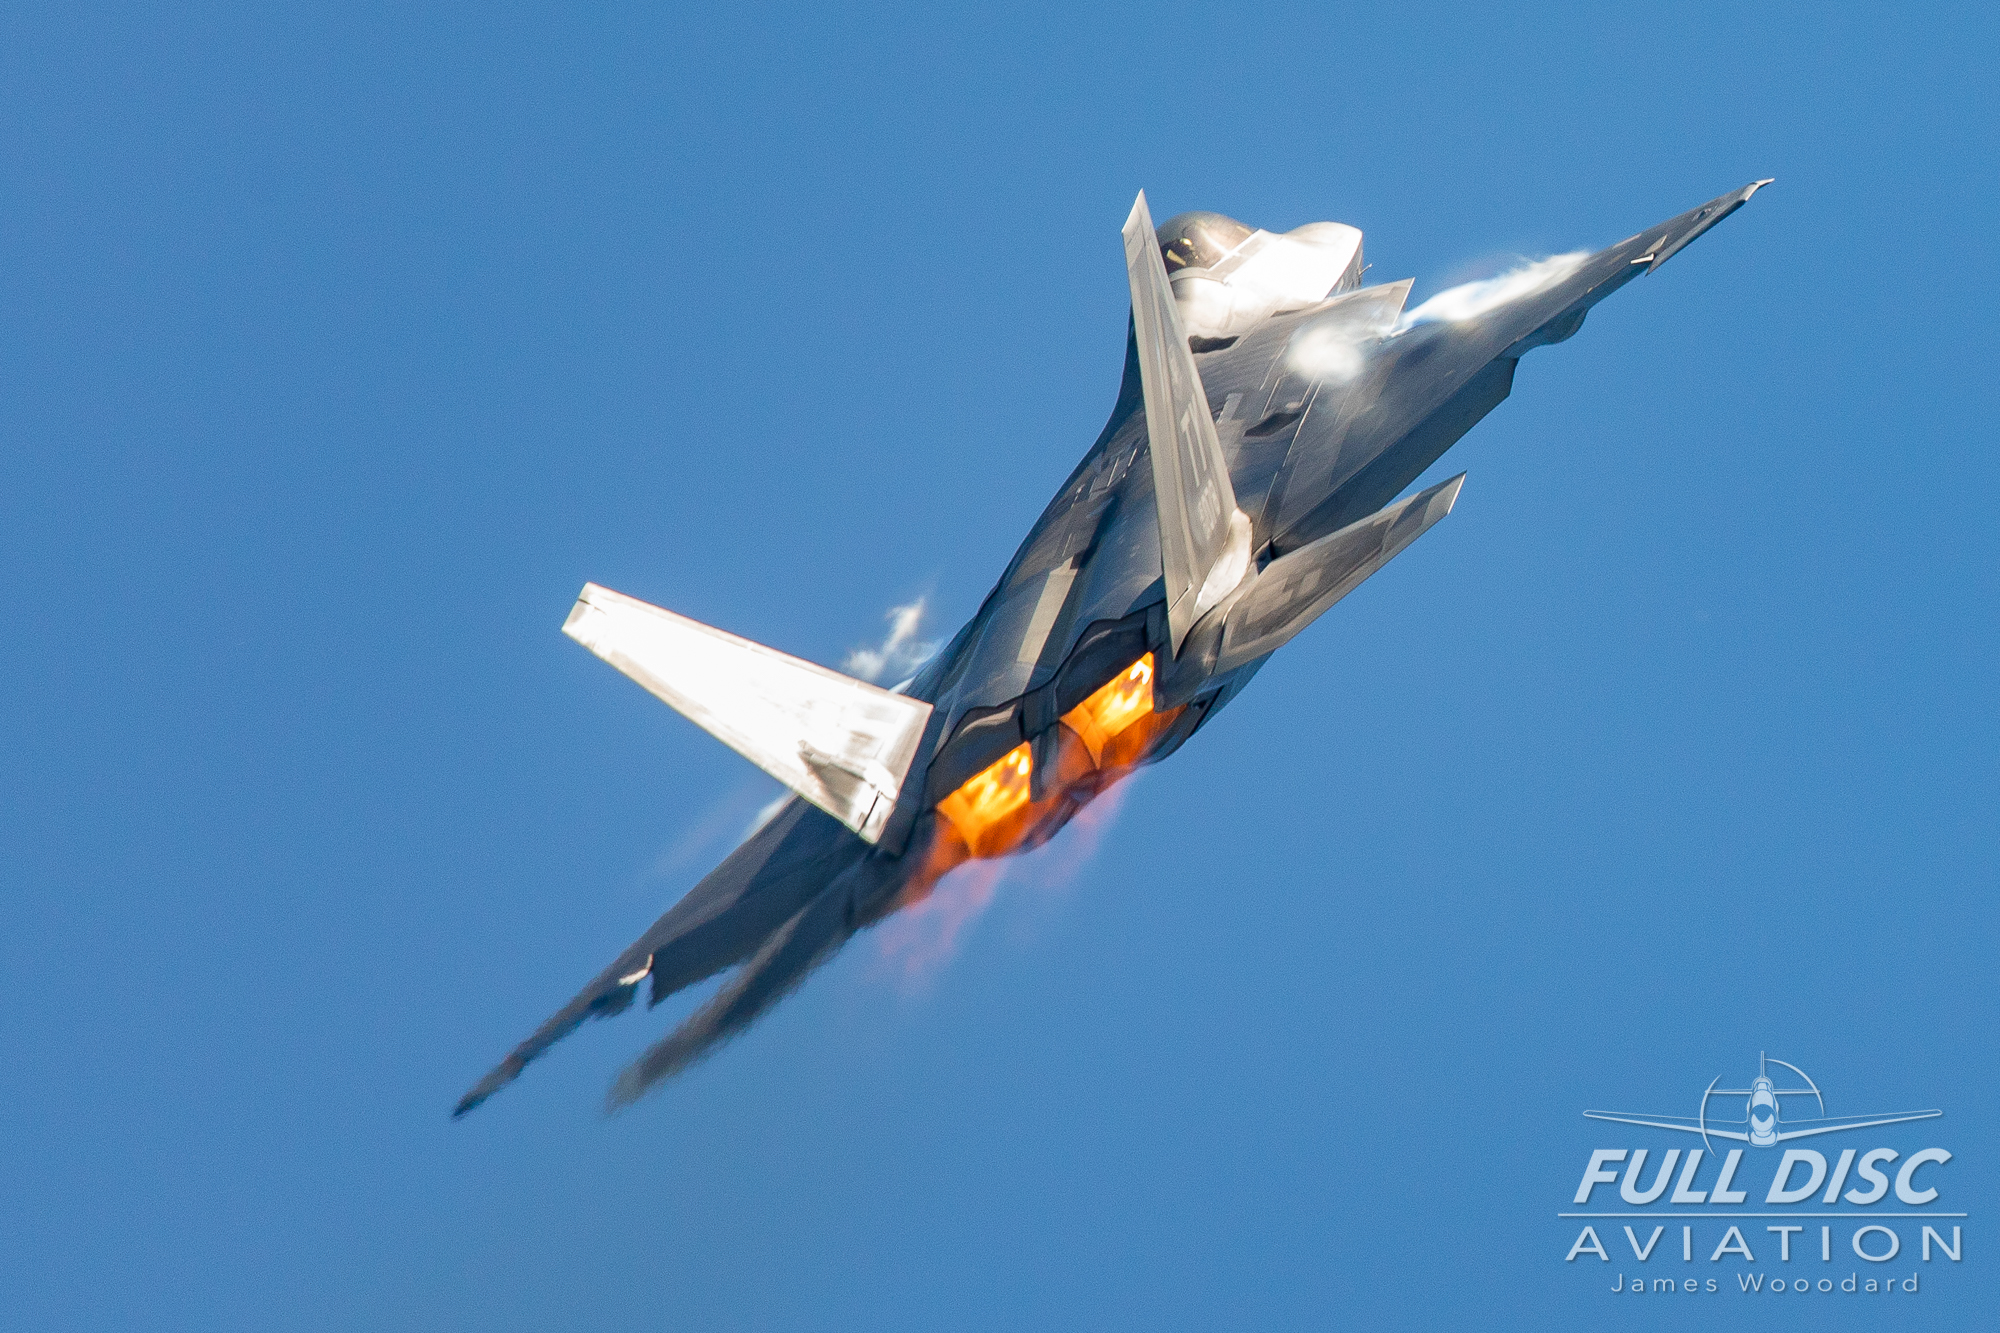 F22_FullDiscAviation_JamesWoodard-April 27, 2019-03-2.jpg